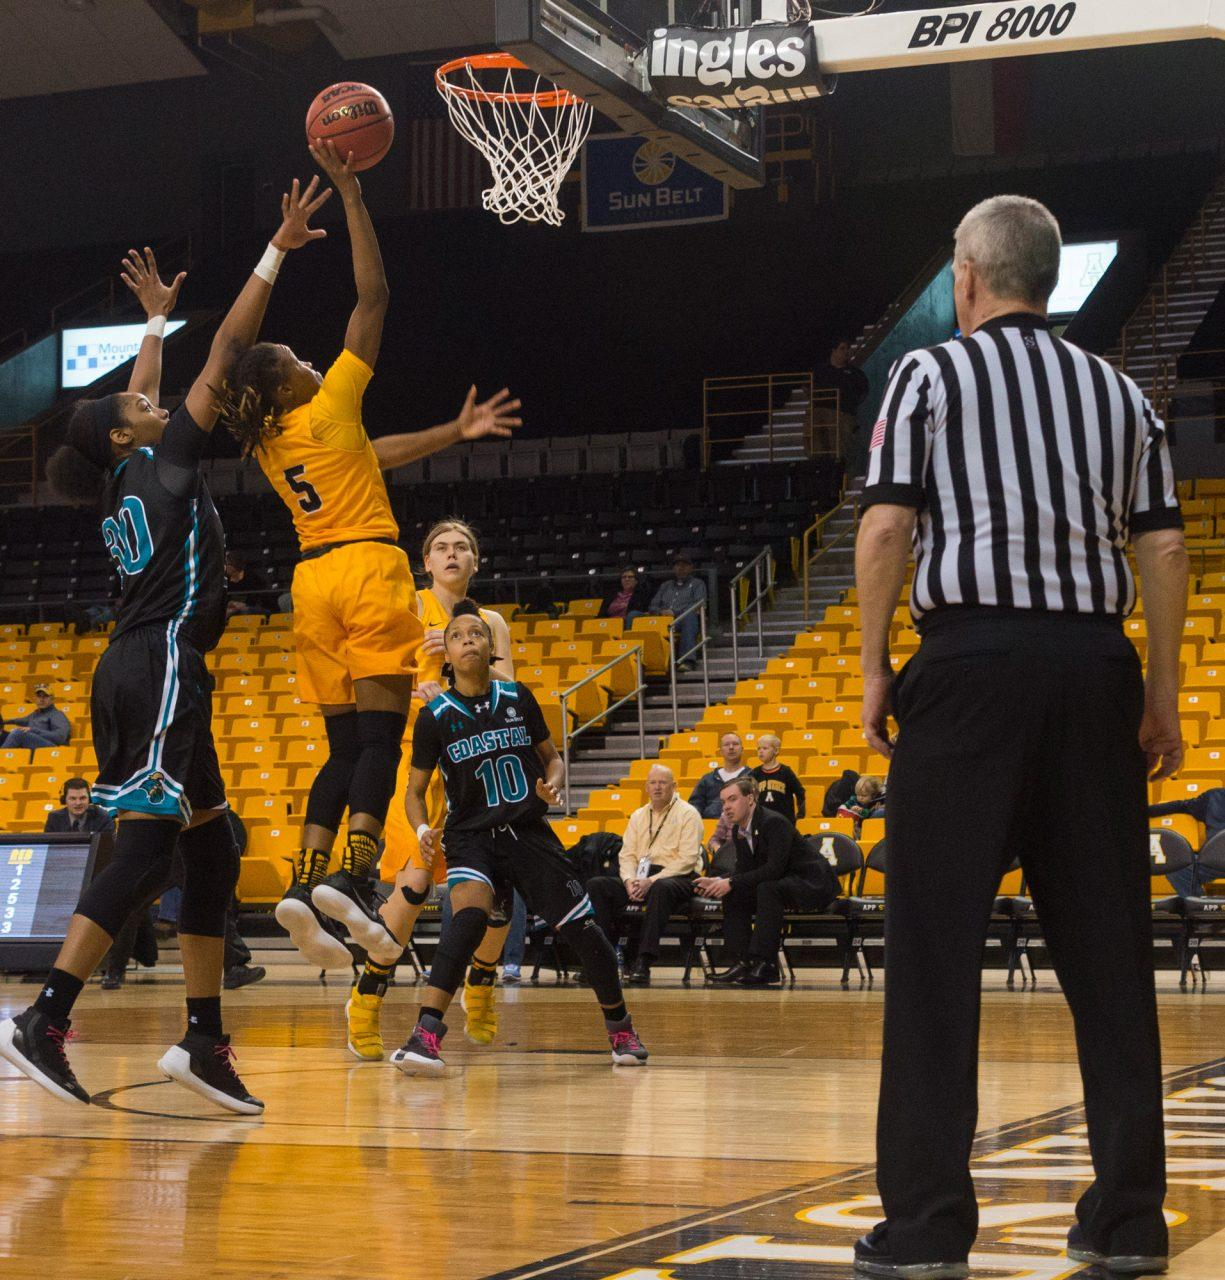 Junior guard Presha Stanley jumps with the ball and scores two points during an App State home game in 2018.